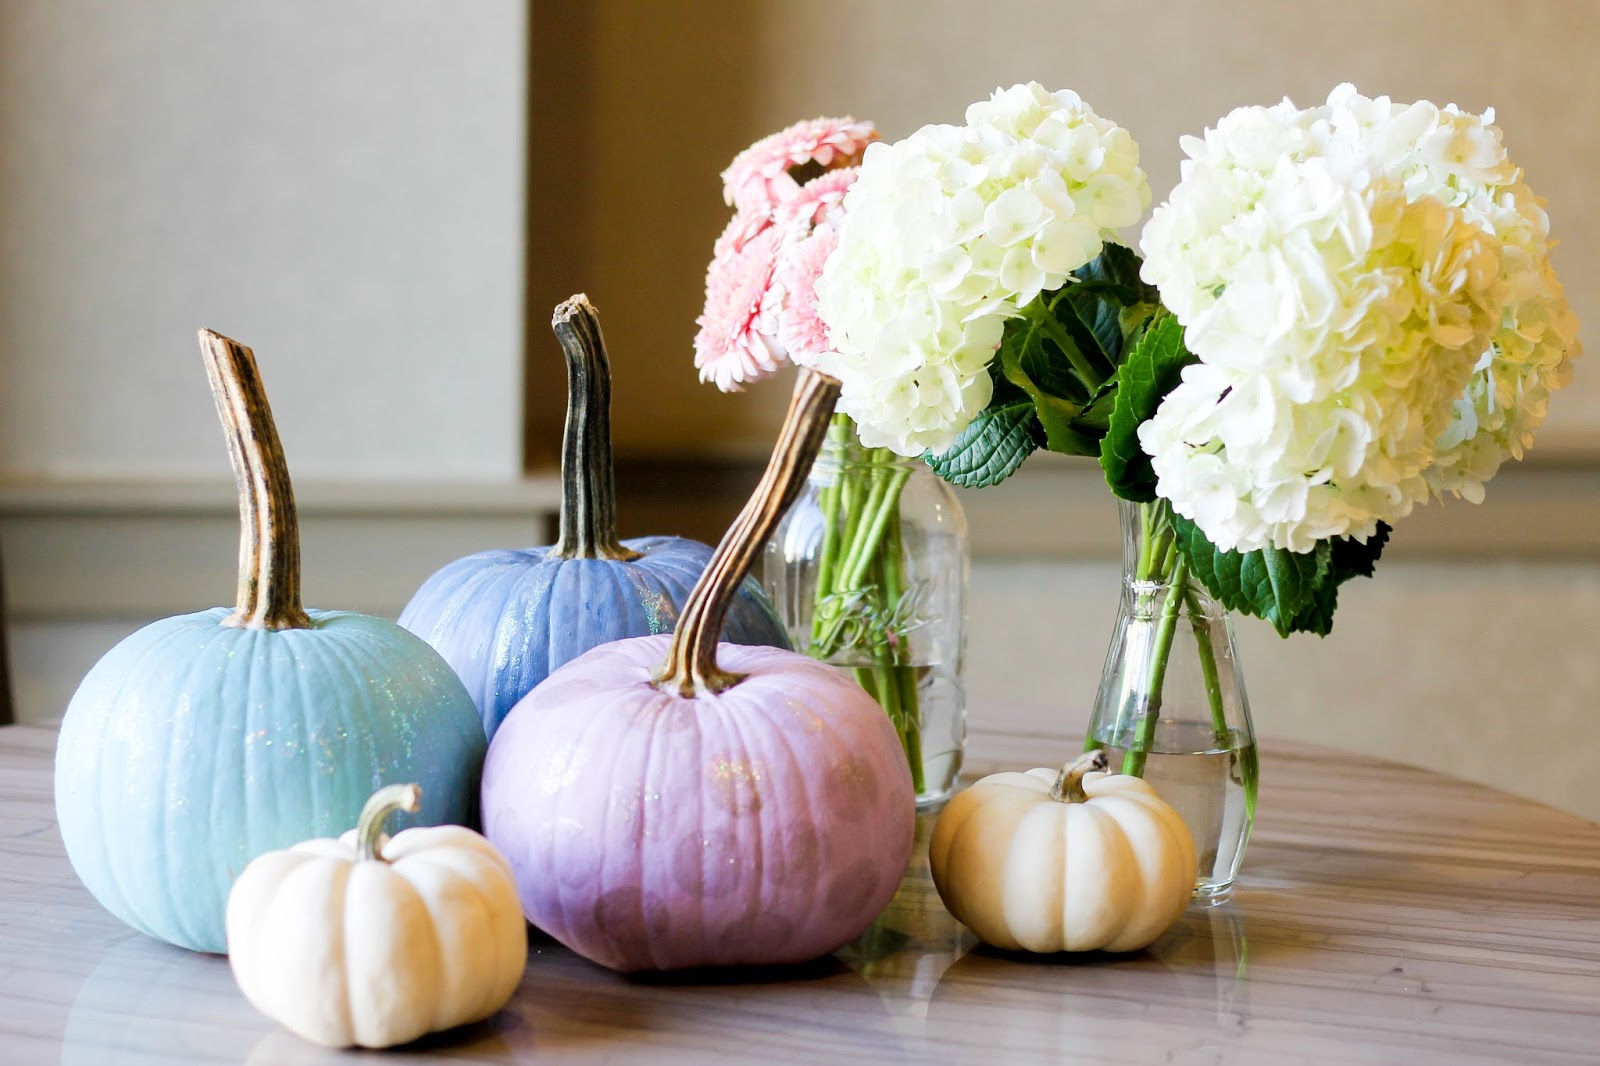 chalk paint on pumpkins, painting pumpkins with chalk paint, annie sloan chalk paint on pumpkins, fall party, hosting a fall brunch party, pumpkin painting party ideas, fall party ideas, mr. clean concentrated cleaner, pretty in the pines blog, raleigh, north carolina